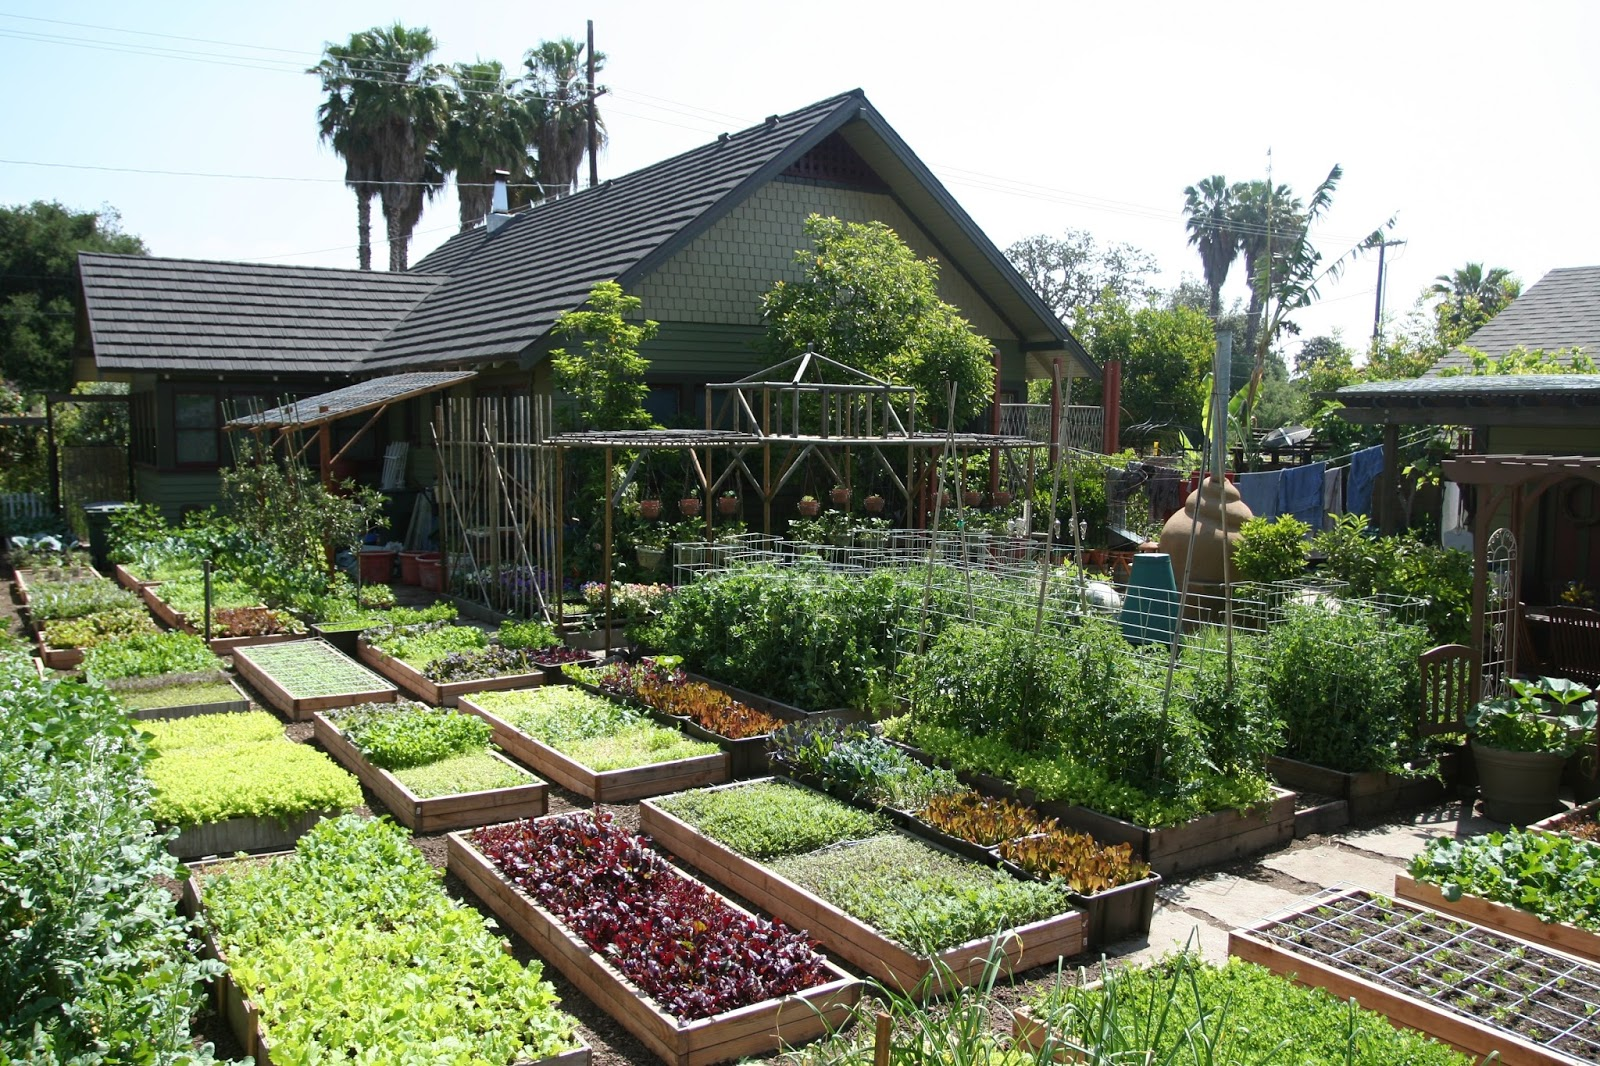 Learn How This Family Grows 6,000 Lbs Of Food on Just 1/10th Acre